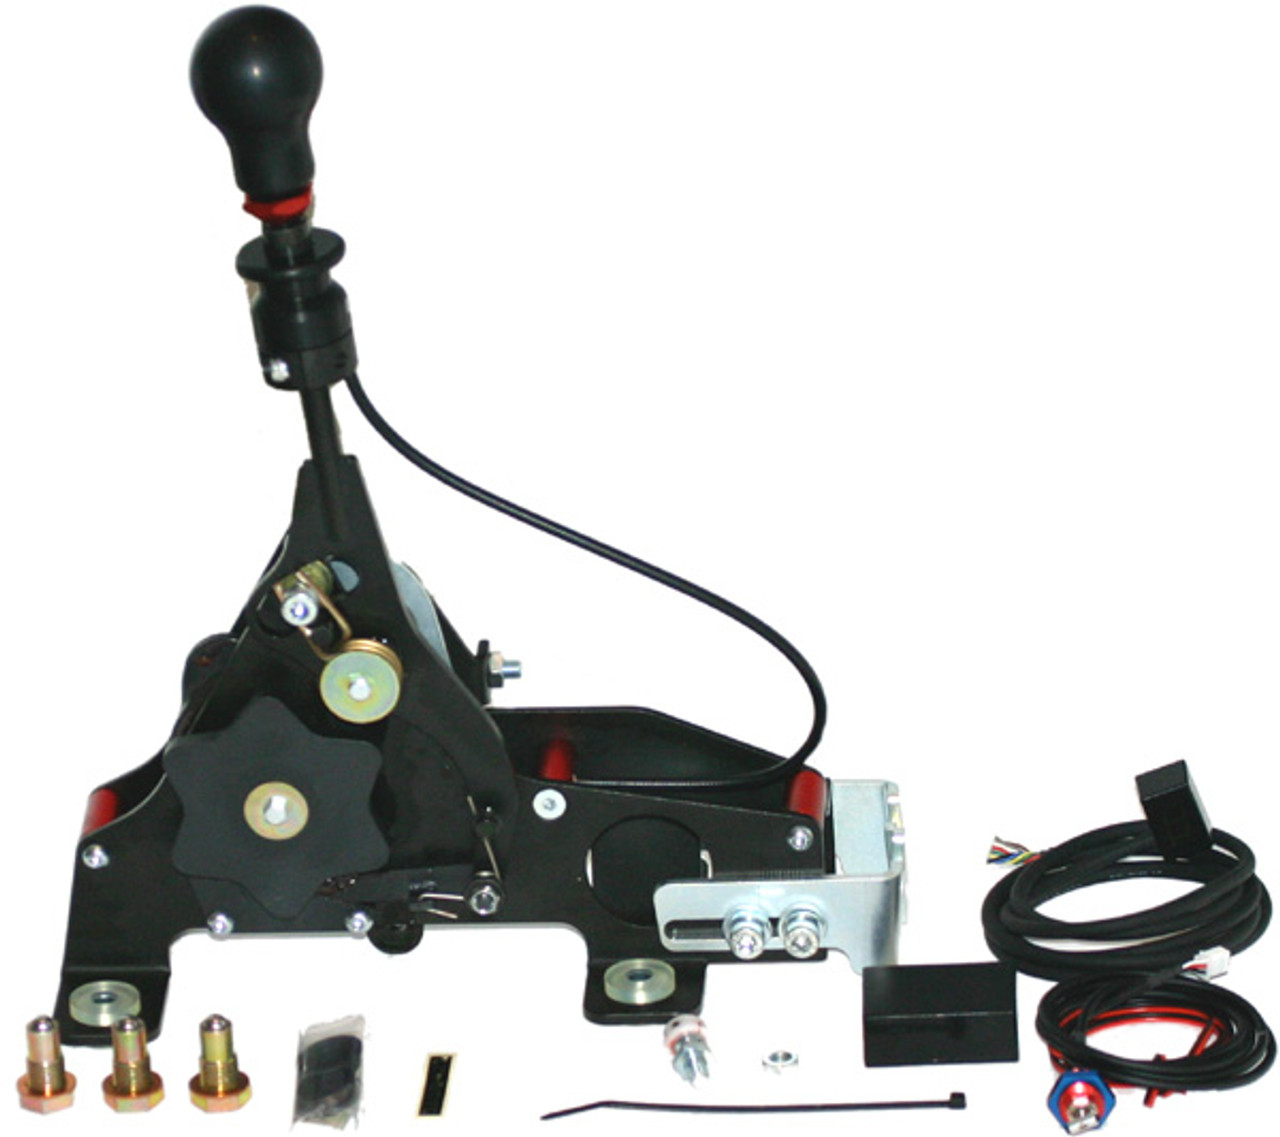 Ikeya Formula Sequential Shifter Evo 4-9 with Indicator